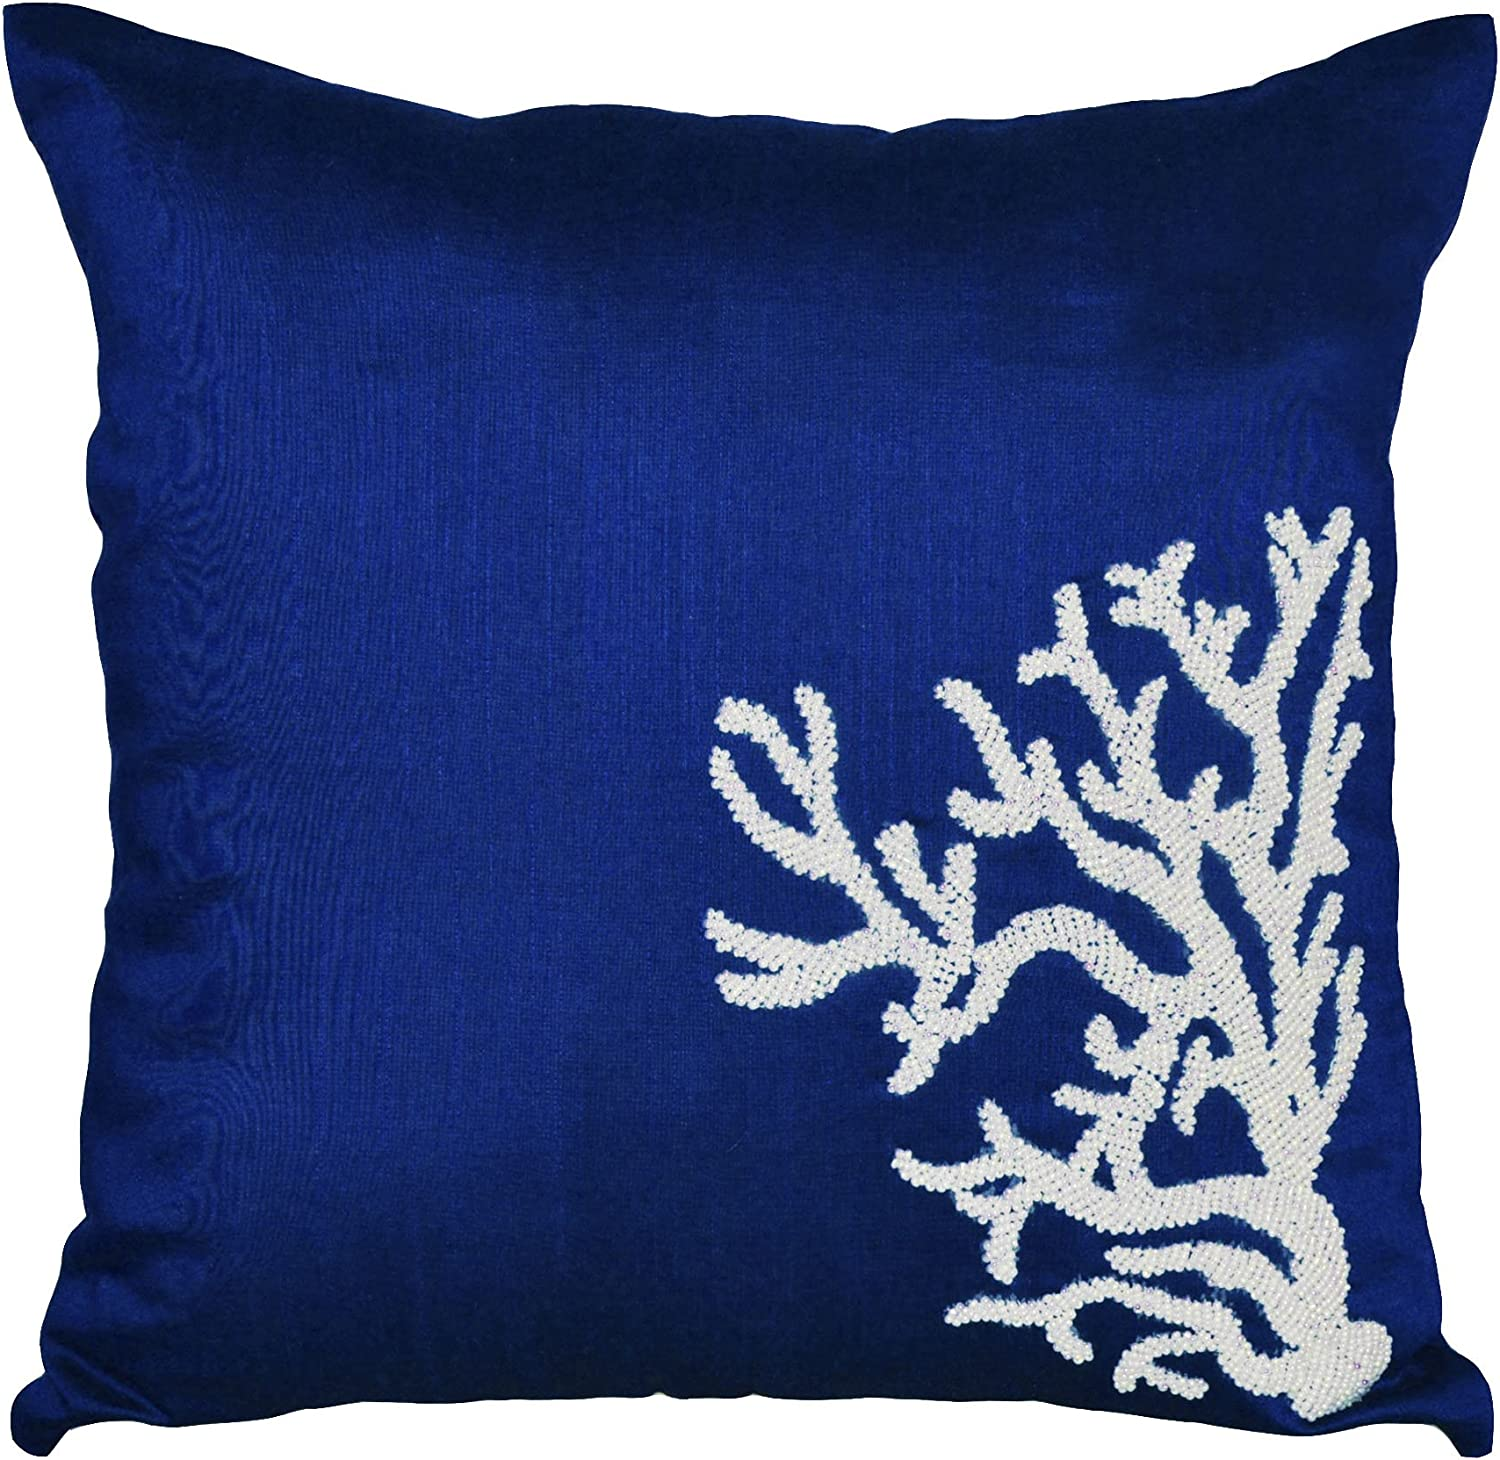 Amazon Com Amore Beaute Handmade Decorative Throw Pillow Covers With Coral Reef Embroidery Sequin Pillow Covers Couch Pillow Cover Sofa Pillows Covers Nautical Throw Pillow Covers Navy Blue Cushion Cover With